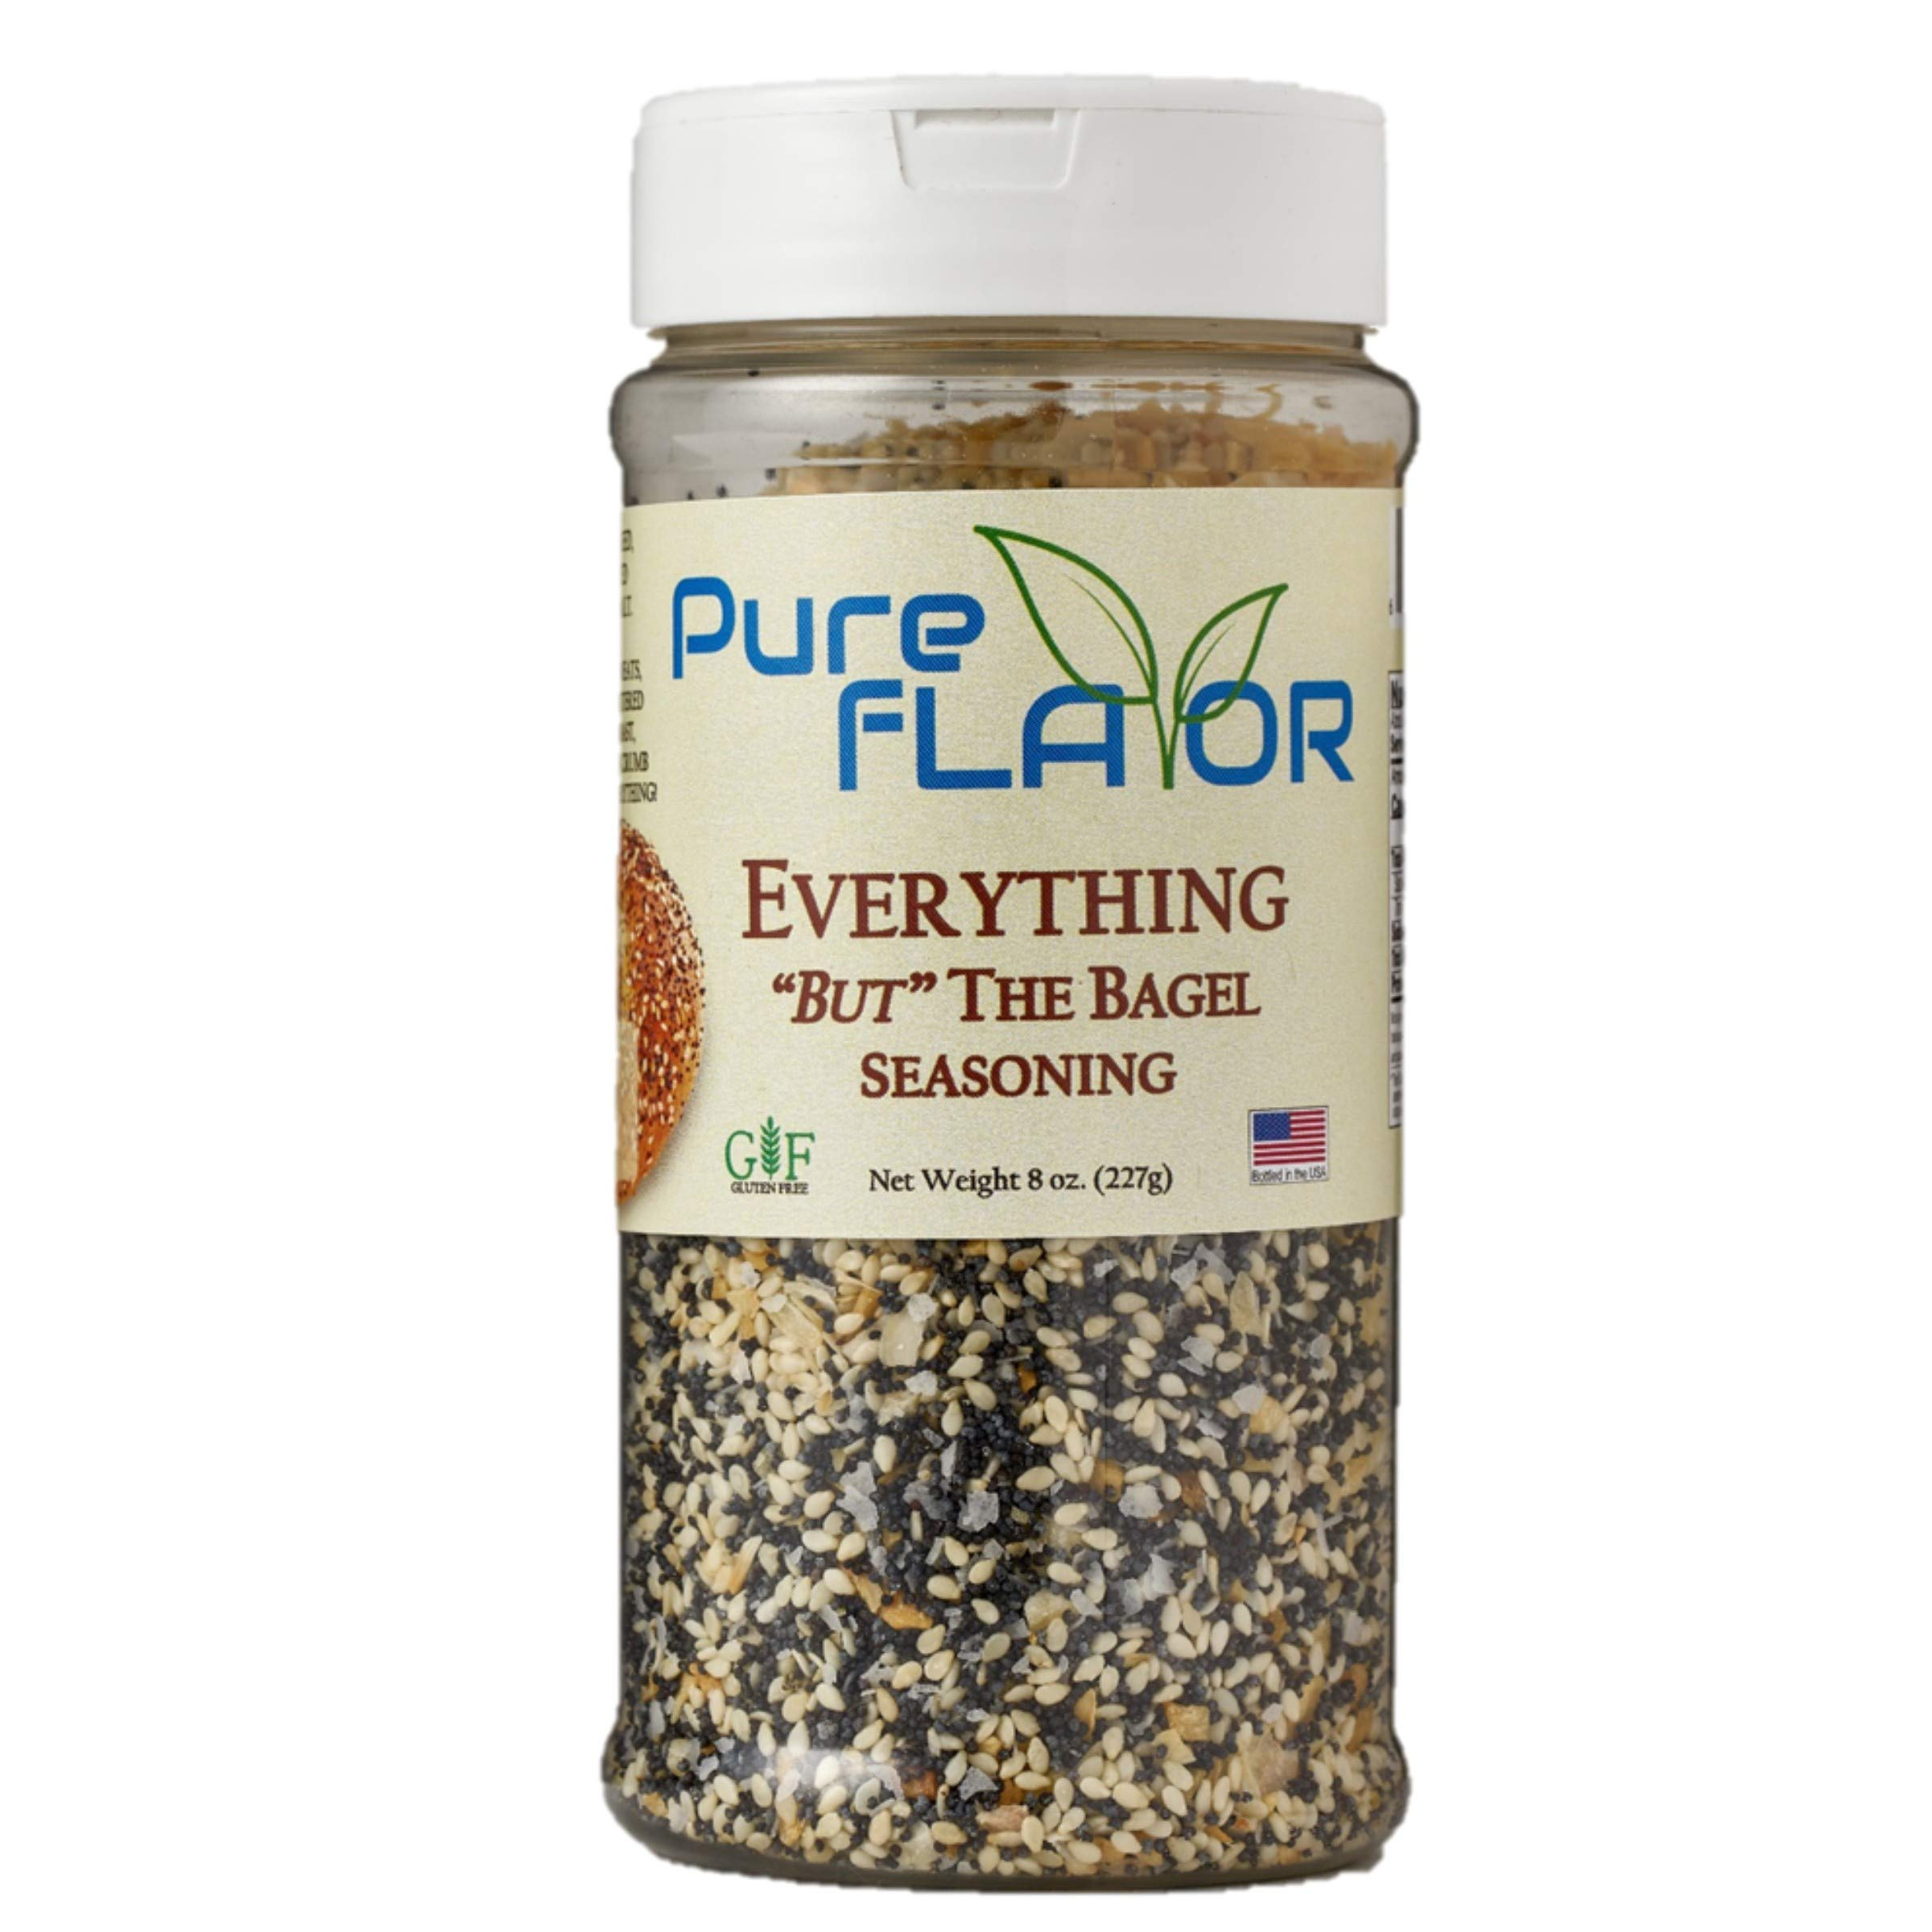 Everything Bagel Seasoning Blend, 8 oz Jar - All Natural, All Purpose Specialty Spice Mix - Sea Salt, Dried Onion, Poppy Seeds, Sesame, Garlic Powder and More